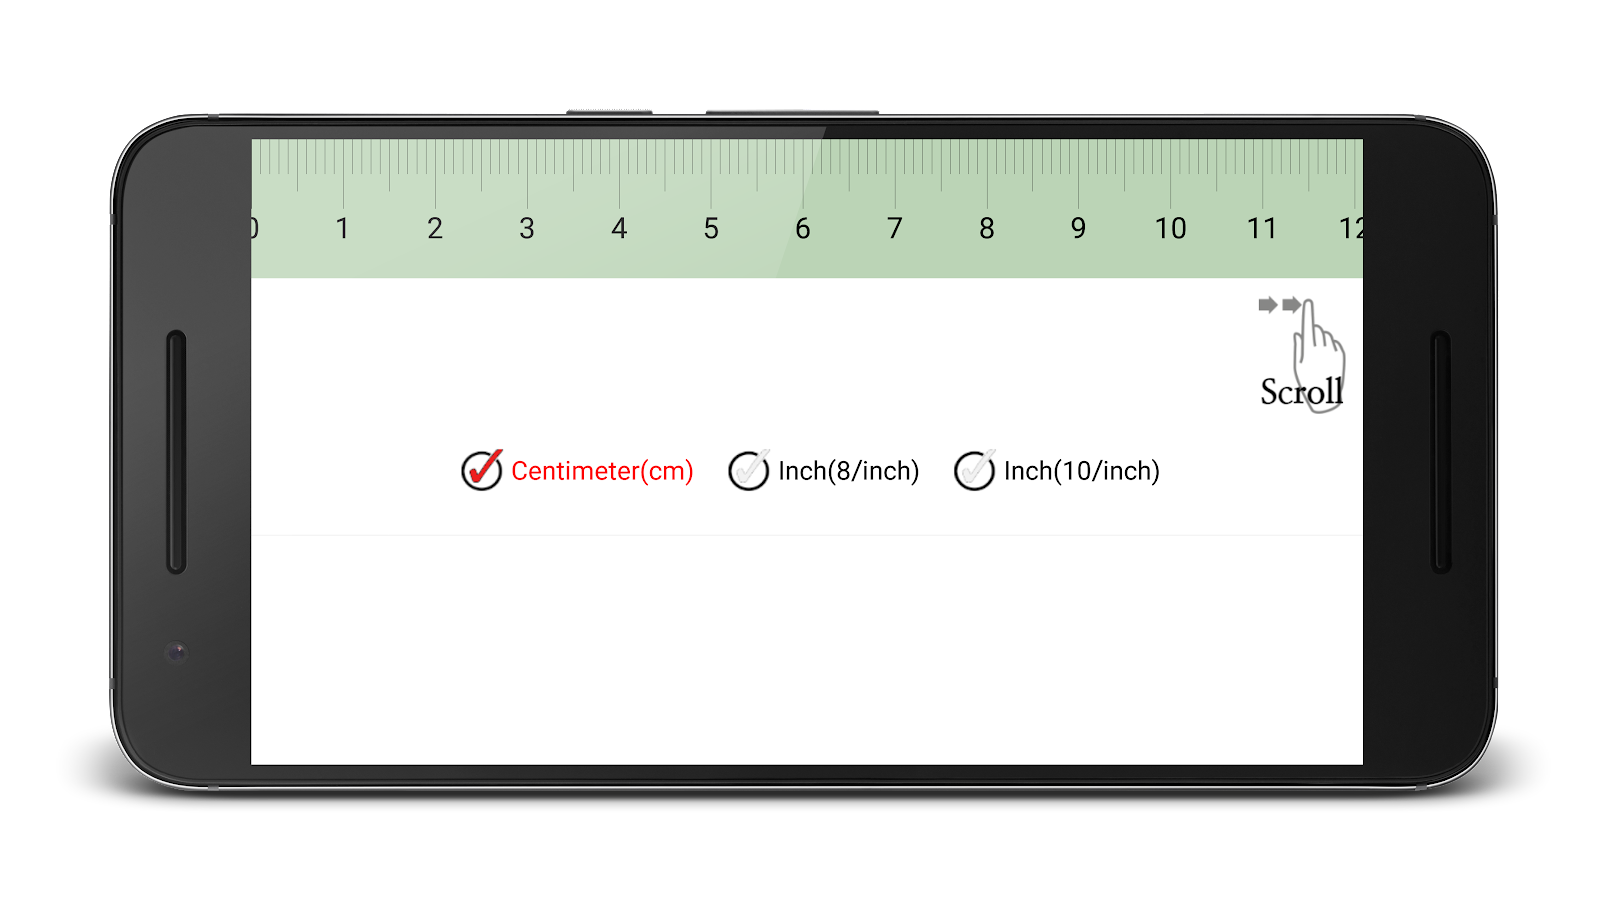 worksheet Measuring In Centimeters tape measure cm inch android apps on google play screenshot